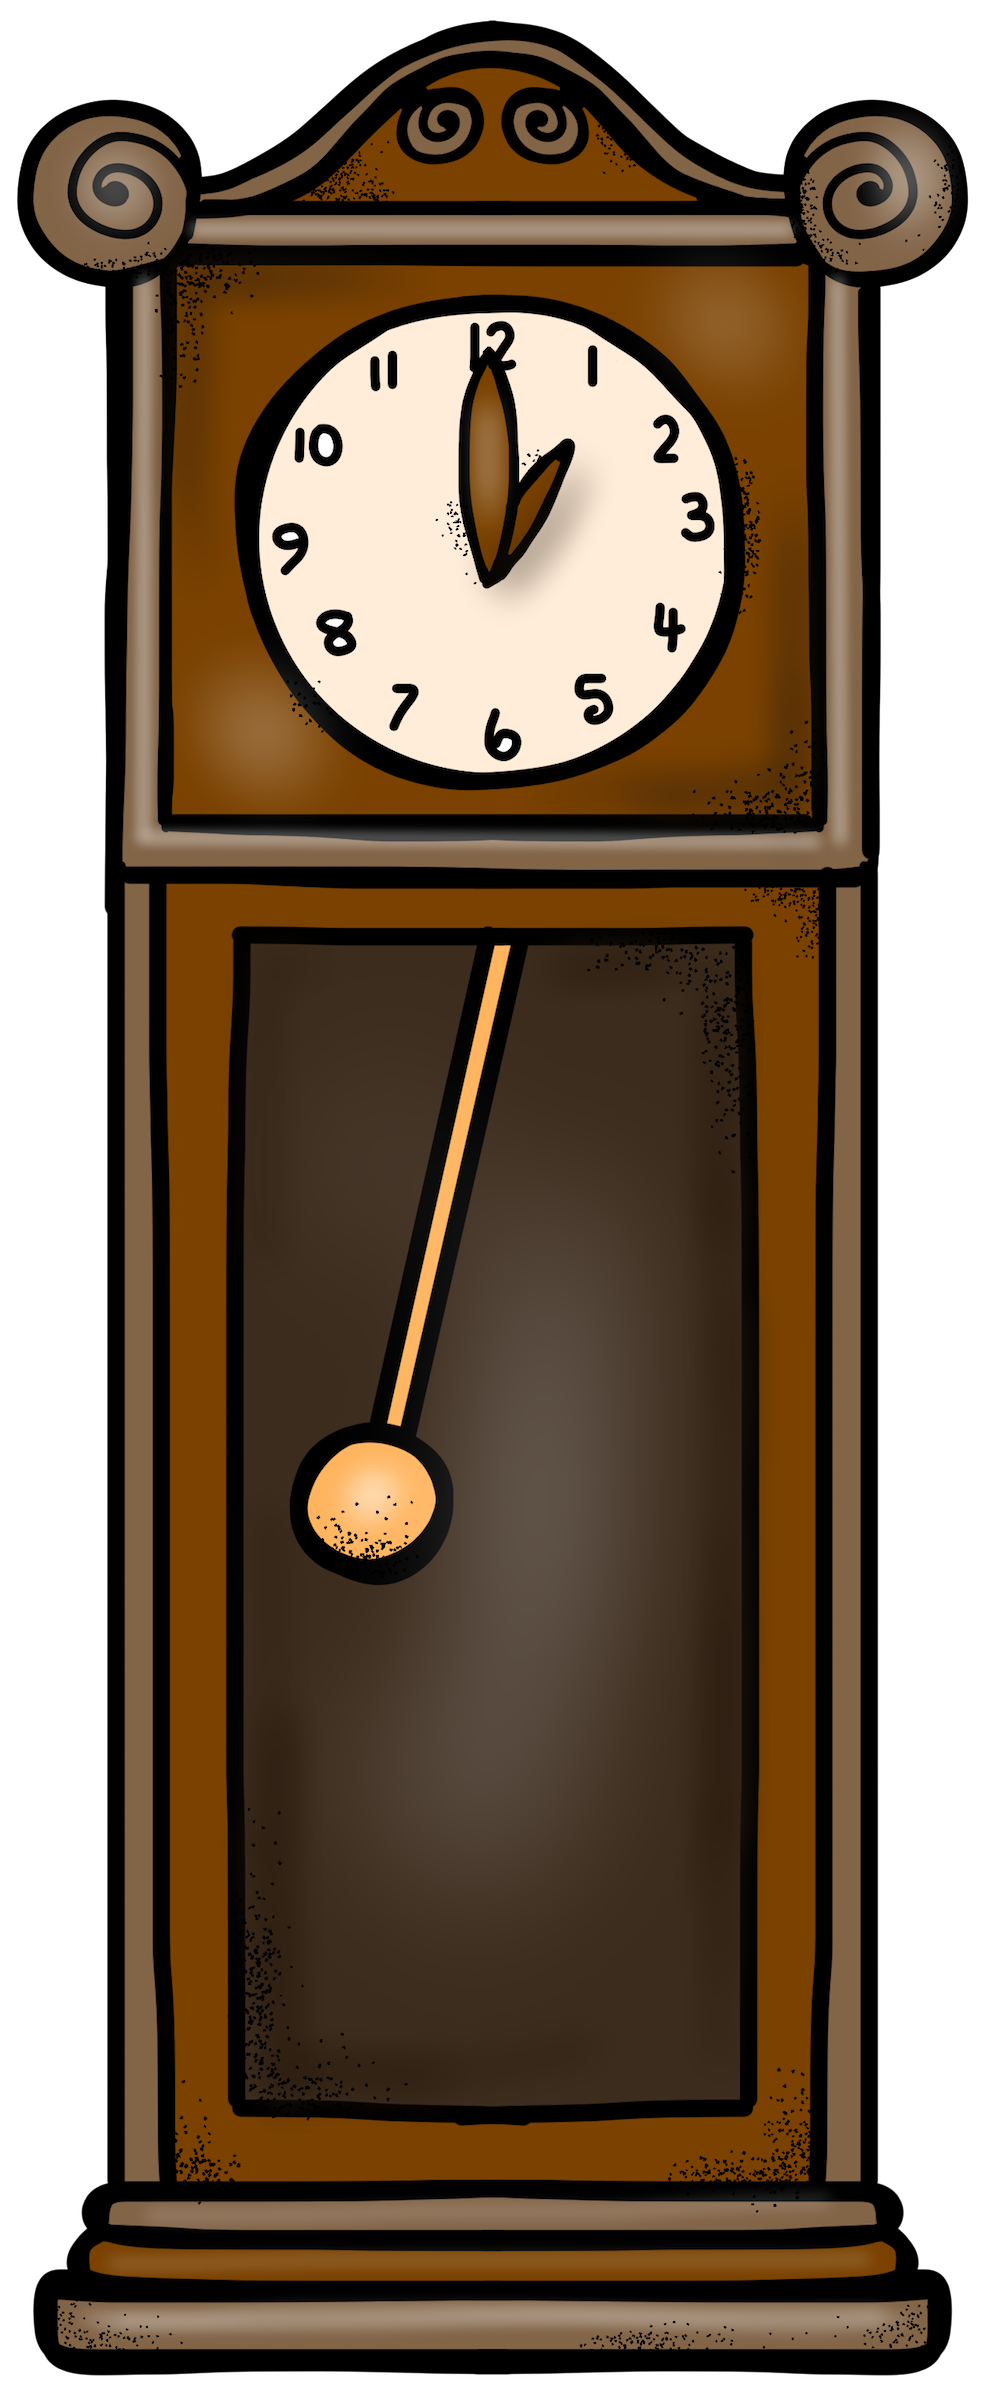 Clipart mouse hickory dickory dock. Printable the little puddins